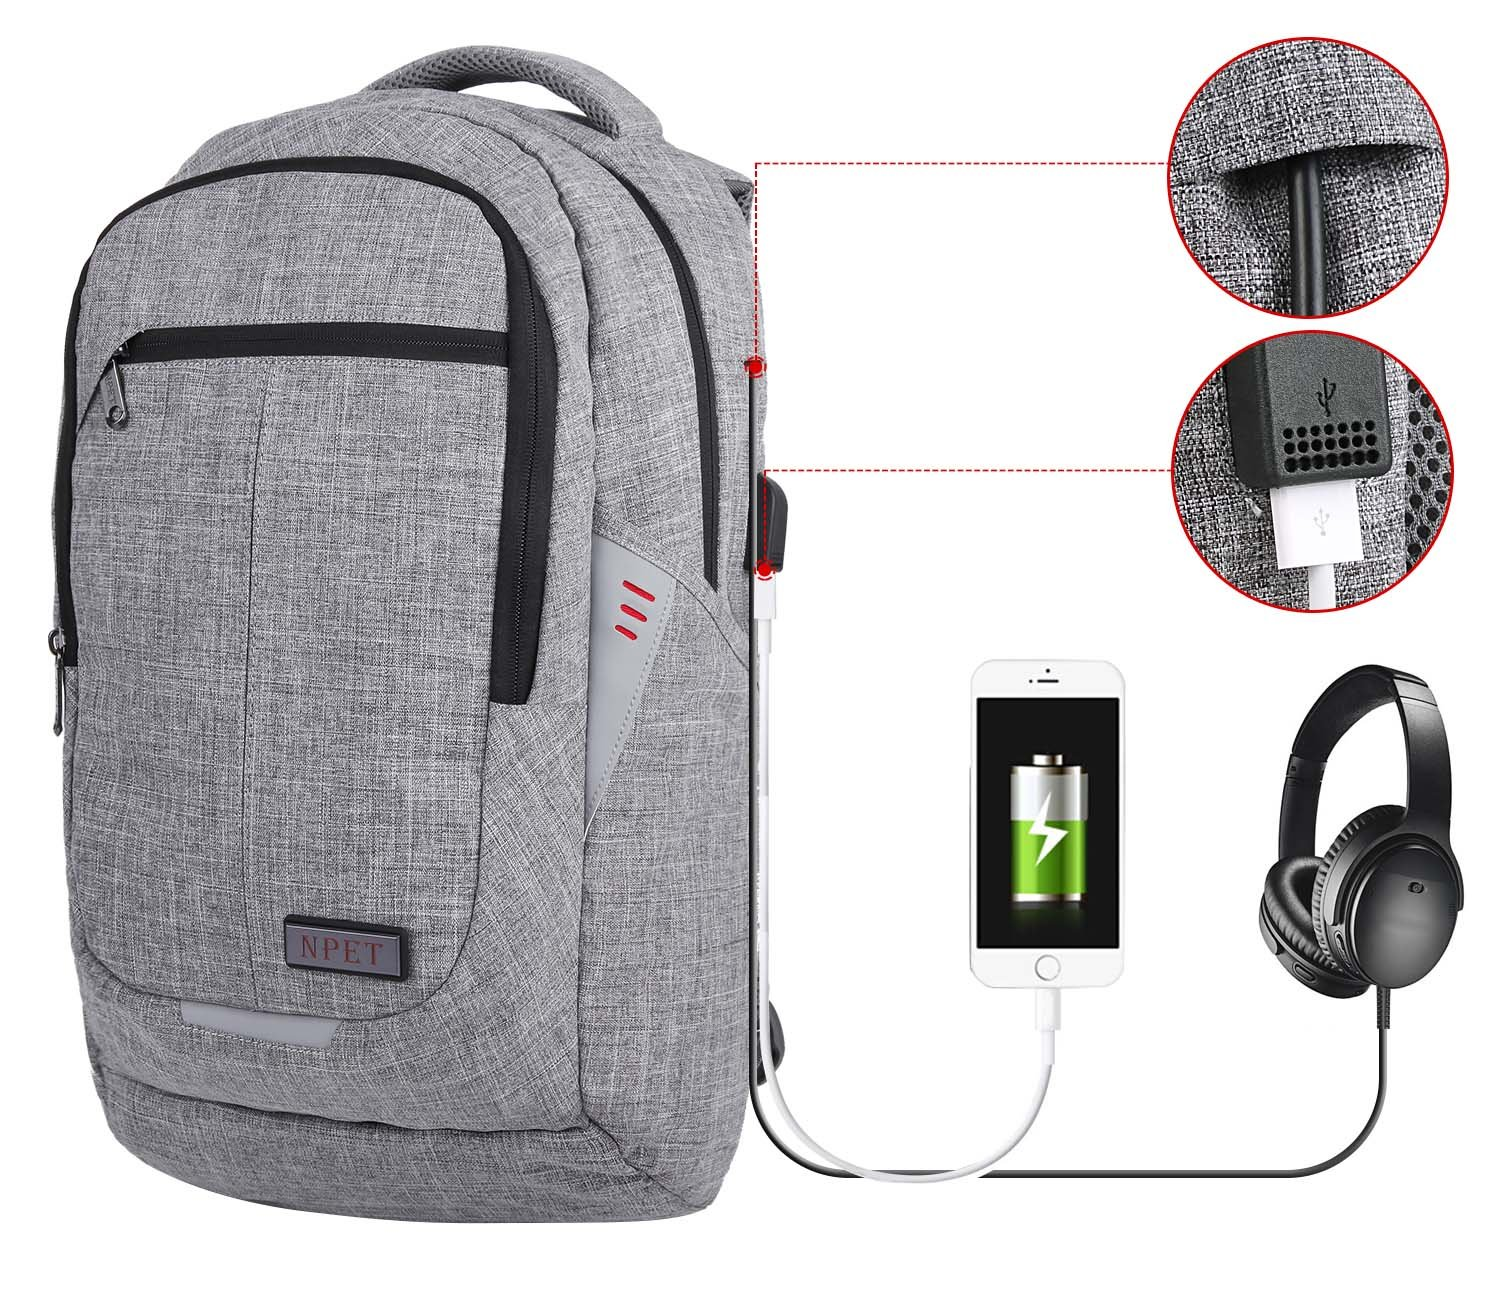 669bf0d56e Business Laptop Backpack, NPET Anti-Theft Waterproof Travel Backpack with  USB Charging Port High